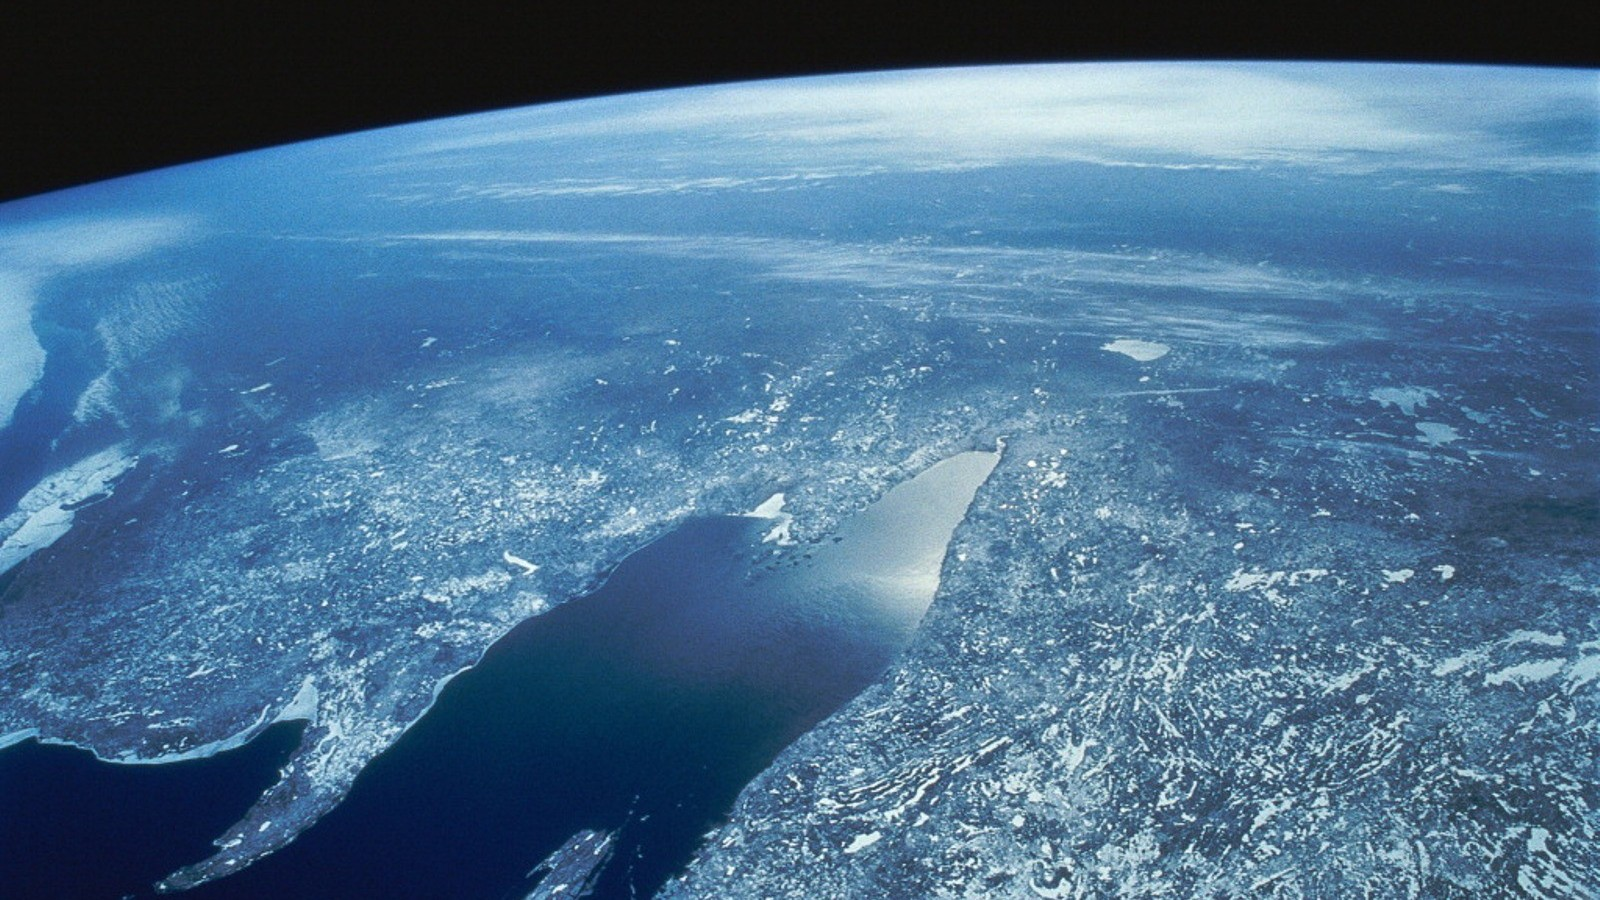 planet earth from space - HD1600×900